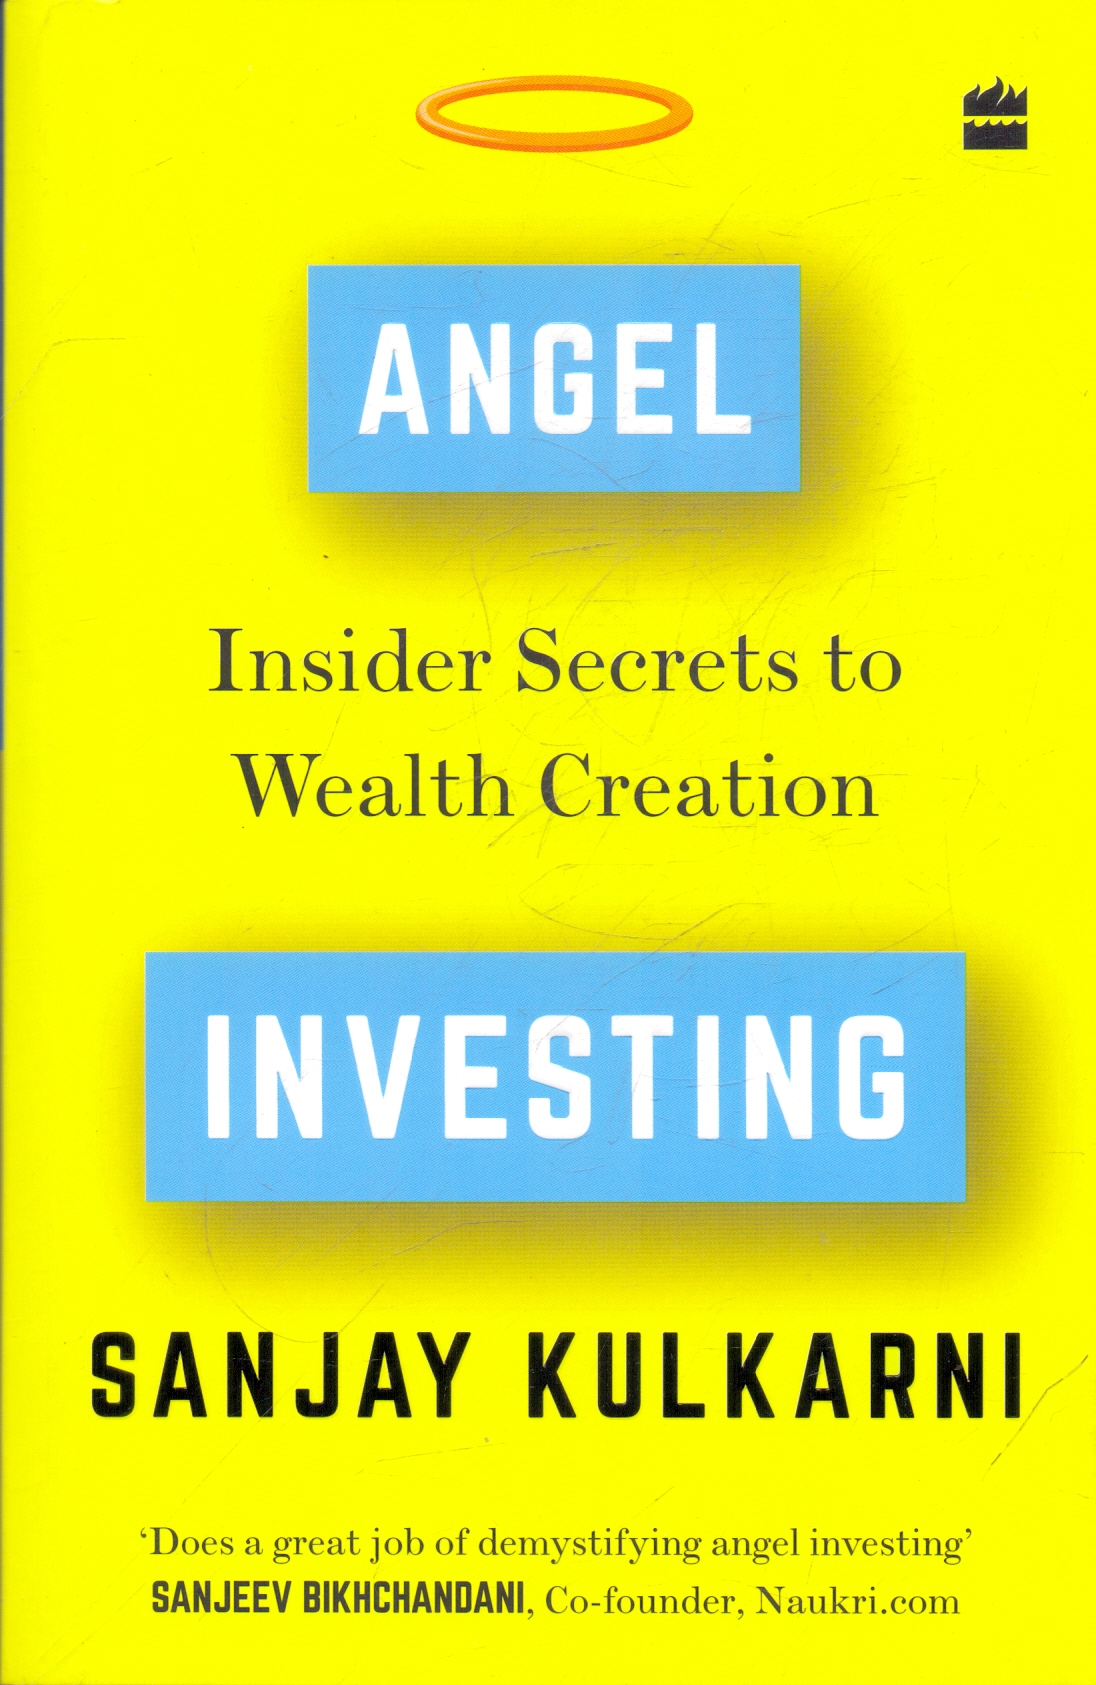 Angel Investing Insider Secrets to Wealth Creation